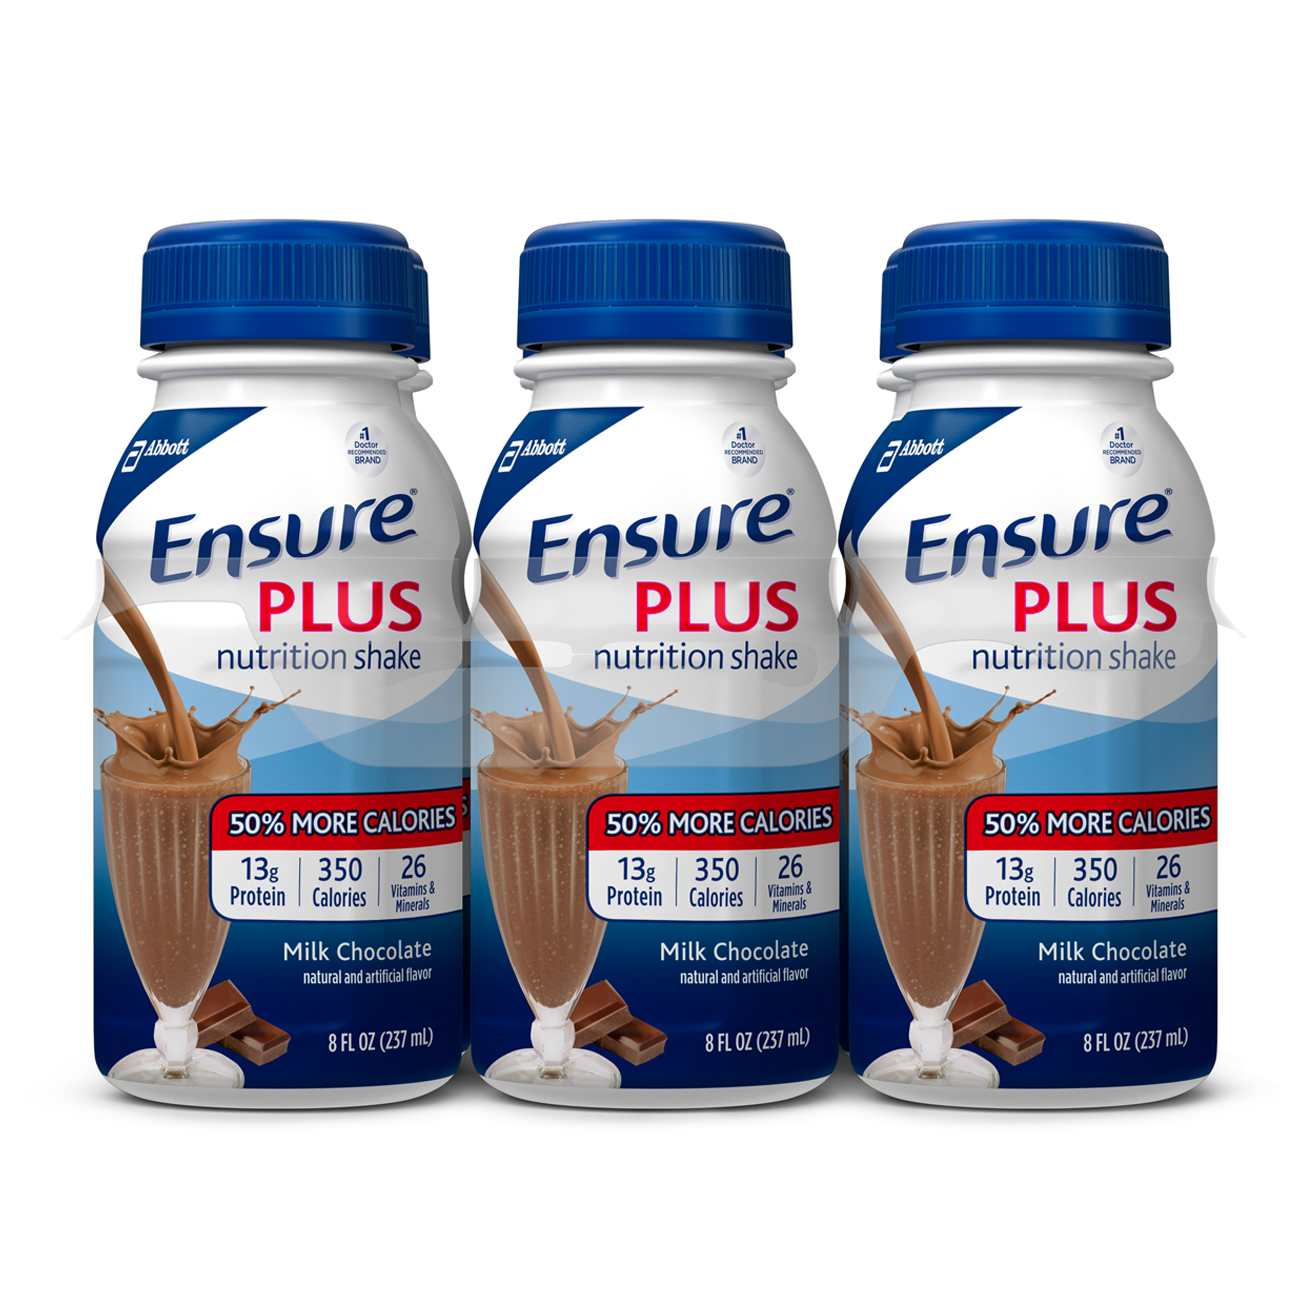 Ensure Plus Nutrition Shake with 13 grams of protein, Meal Replacement Shakes, Milk Chocolate, 8 Fl oz, 24 Ct